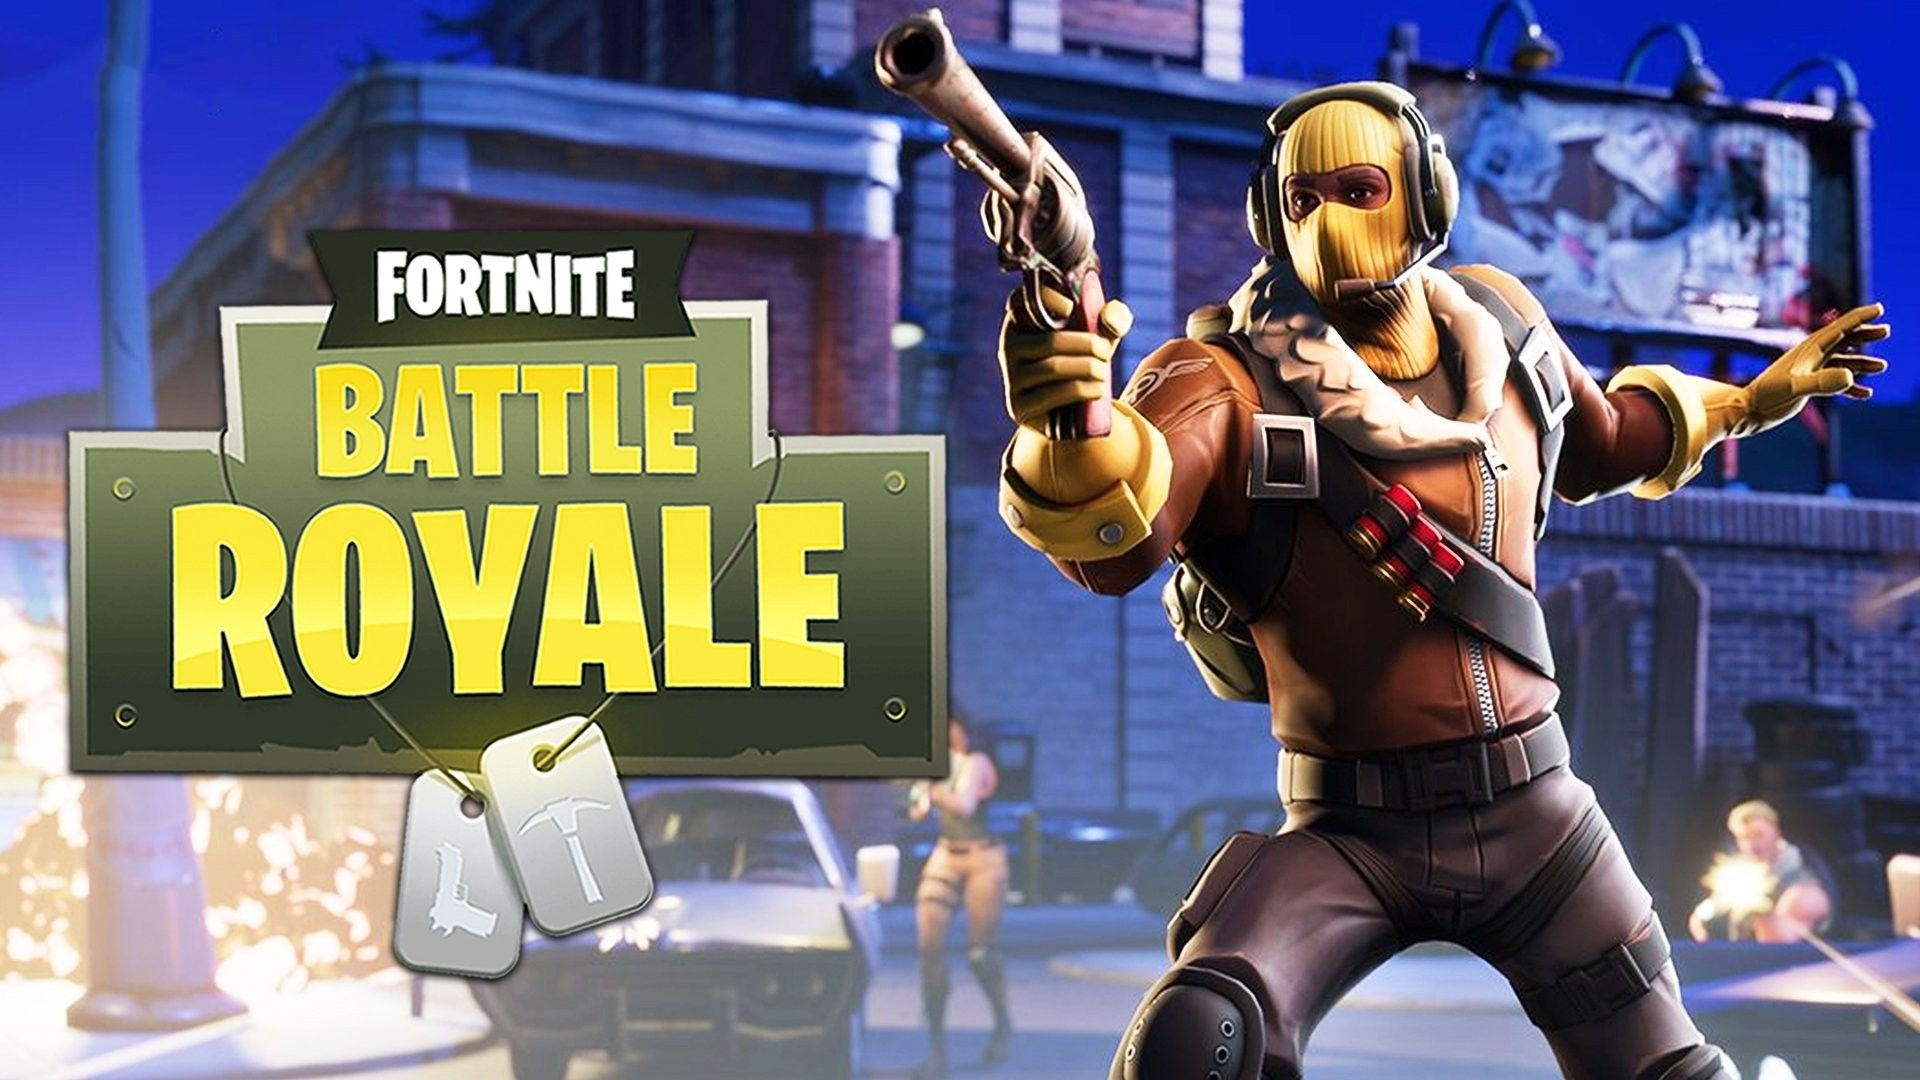 1920x1080 Fortnite Battle Royale HD Wallpapers Theme | FORTNITE | Battle ...